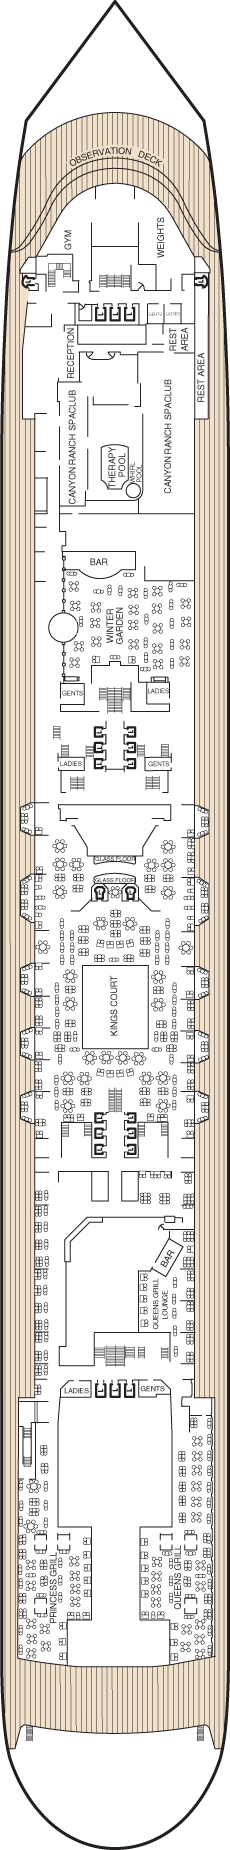 Queen Mary 2 Deck 7 layout